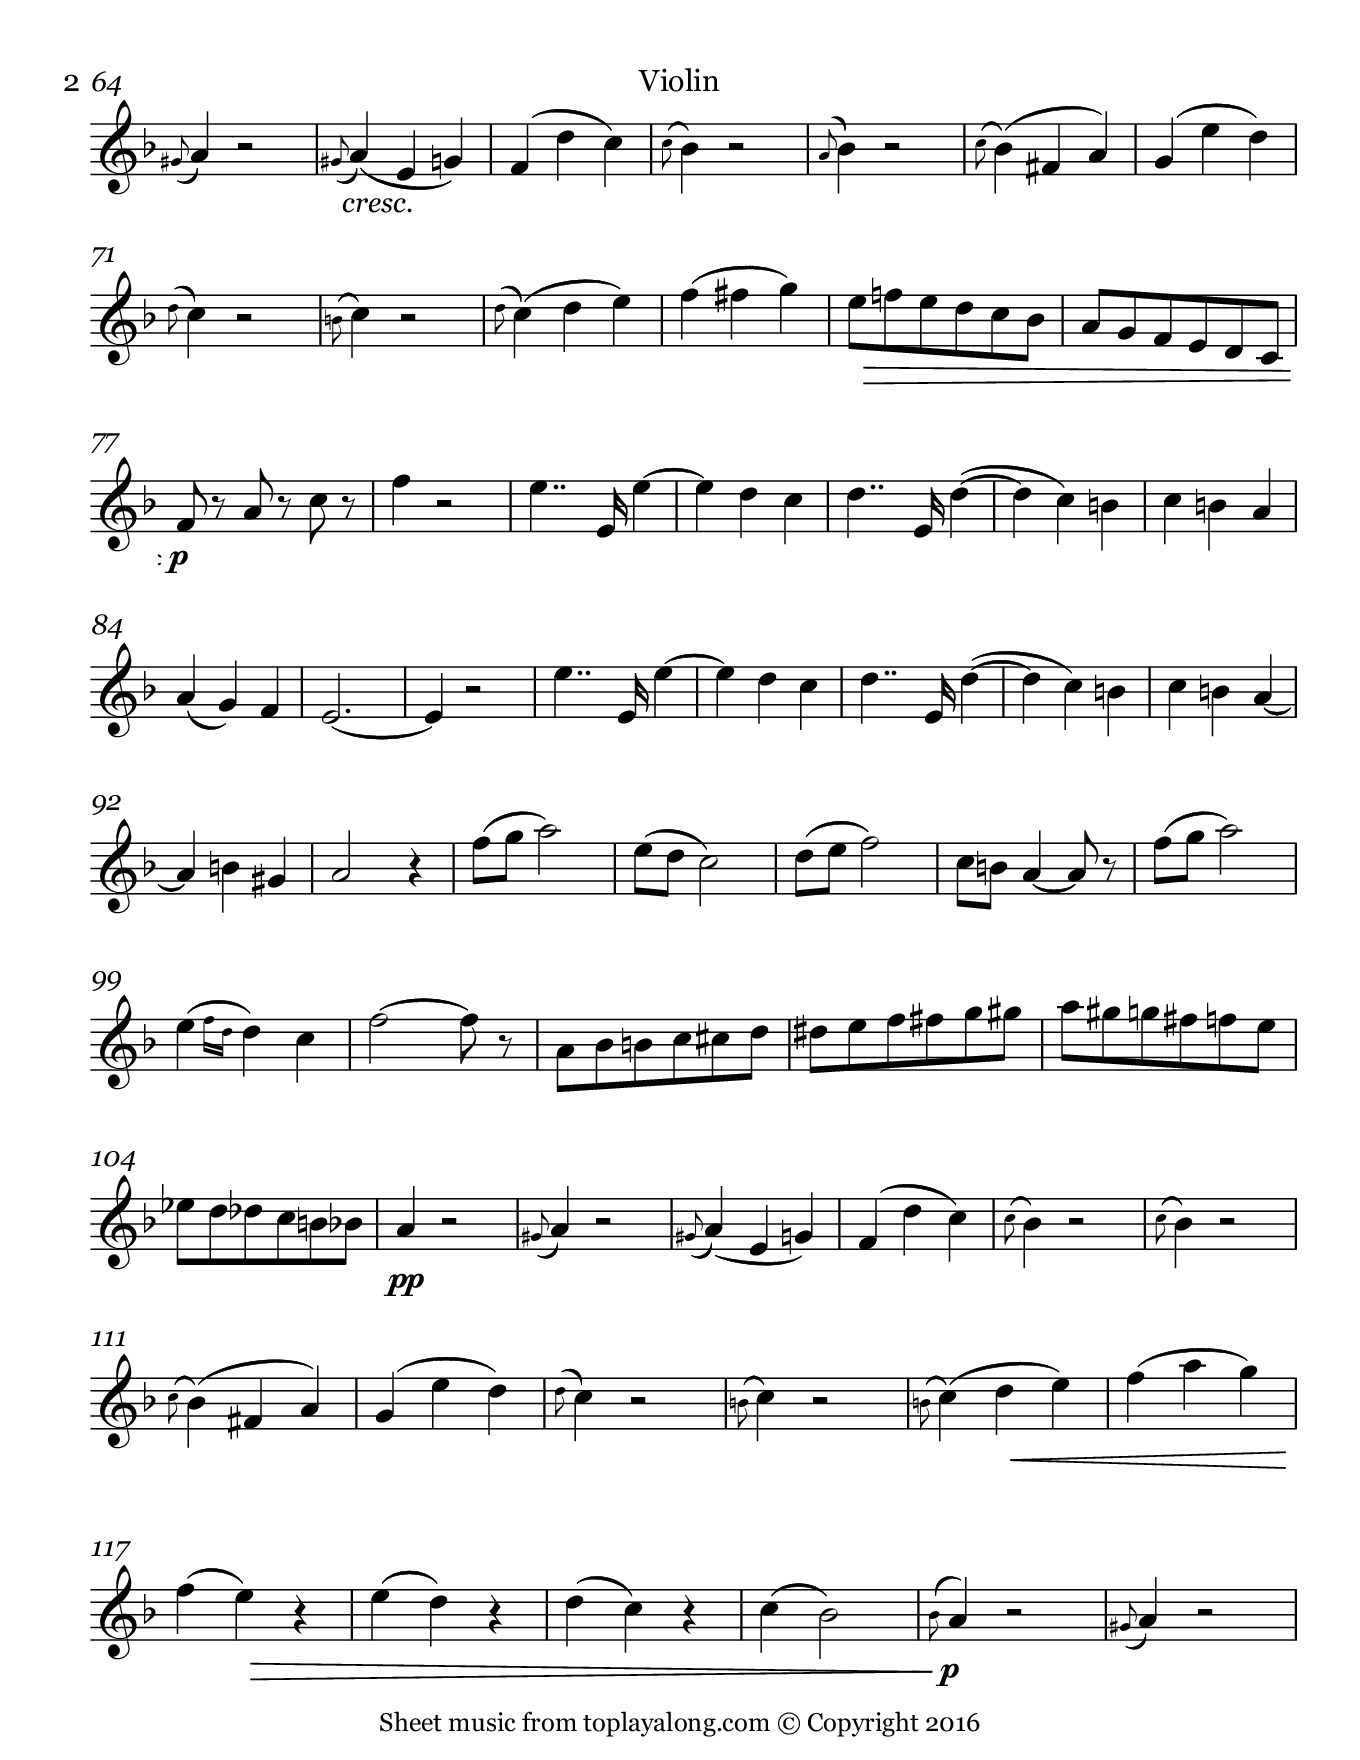 Je veux vivre from Romeo and Juliet by Gounod. Sheet music for Violin, page 2.